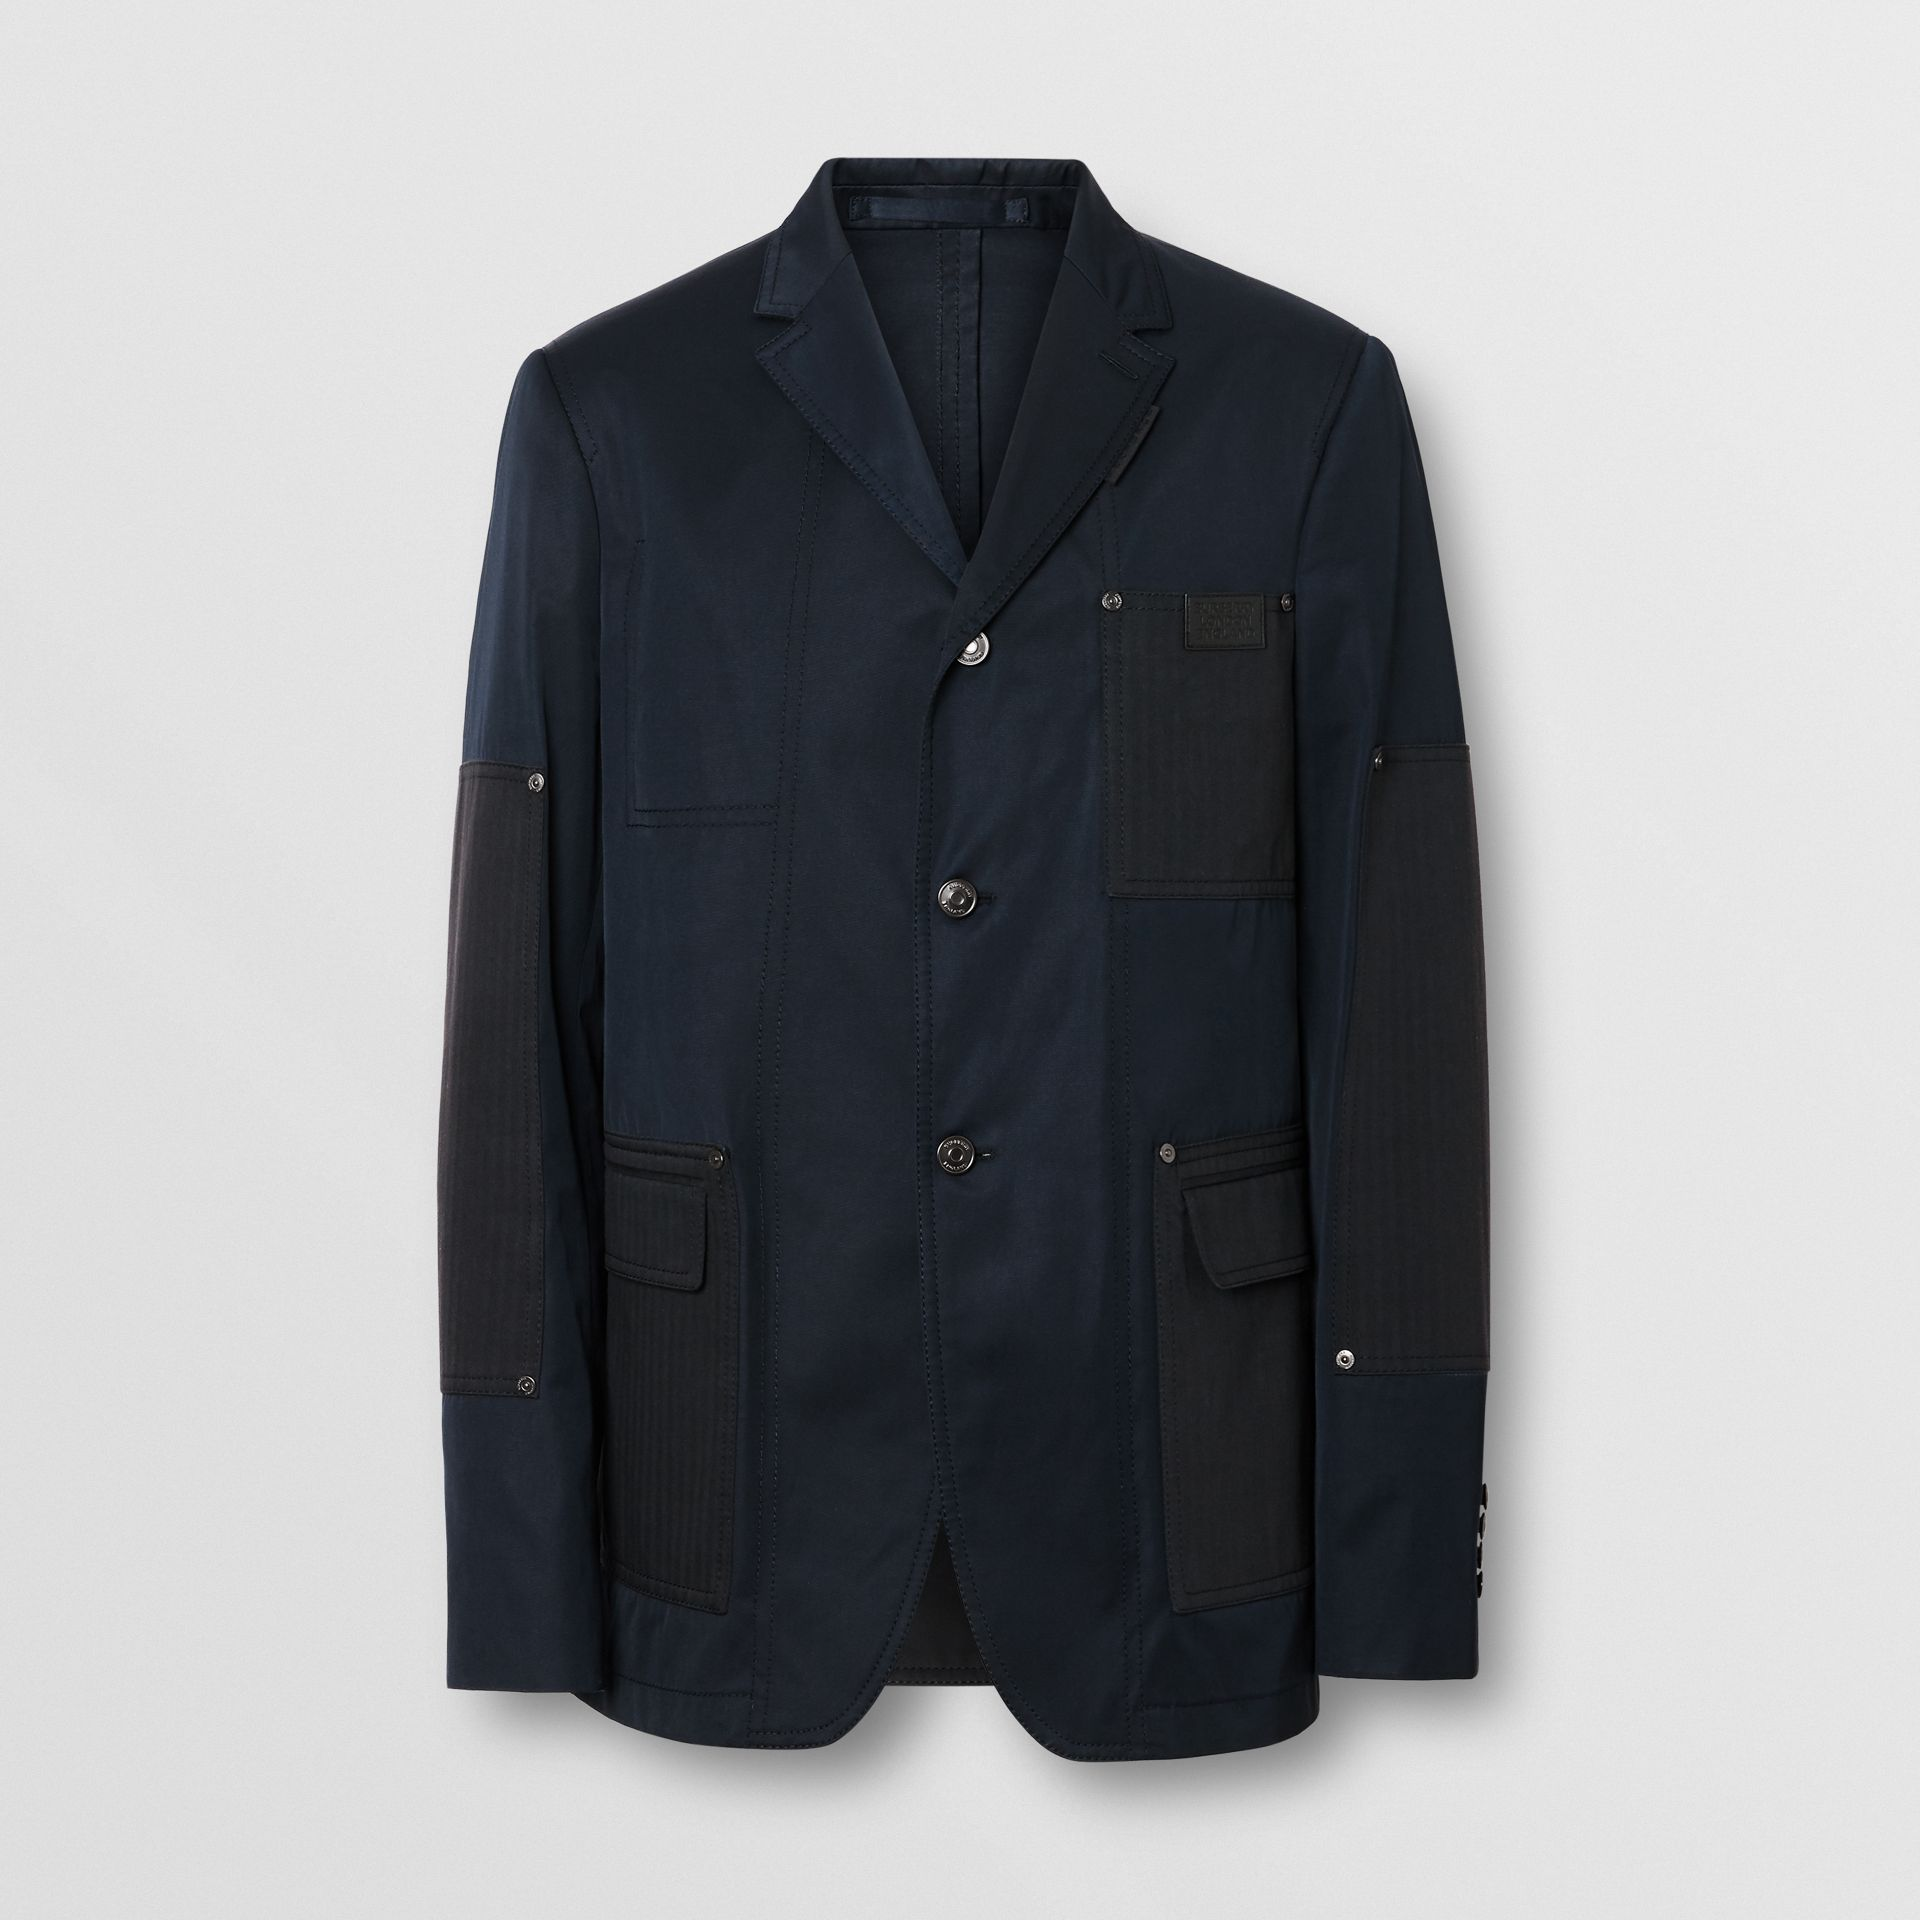 Herringbone Patch Detail Cotton Twill Blend Jacket in Navy - Men | Burberry - gallery image 3